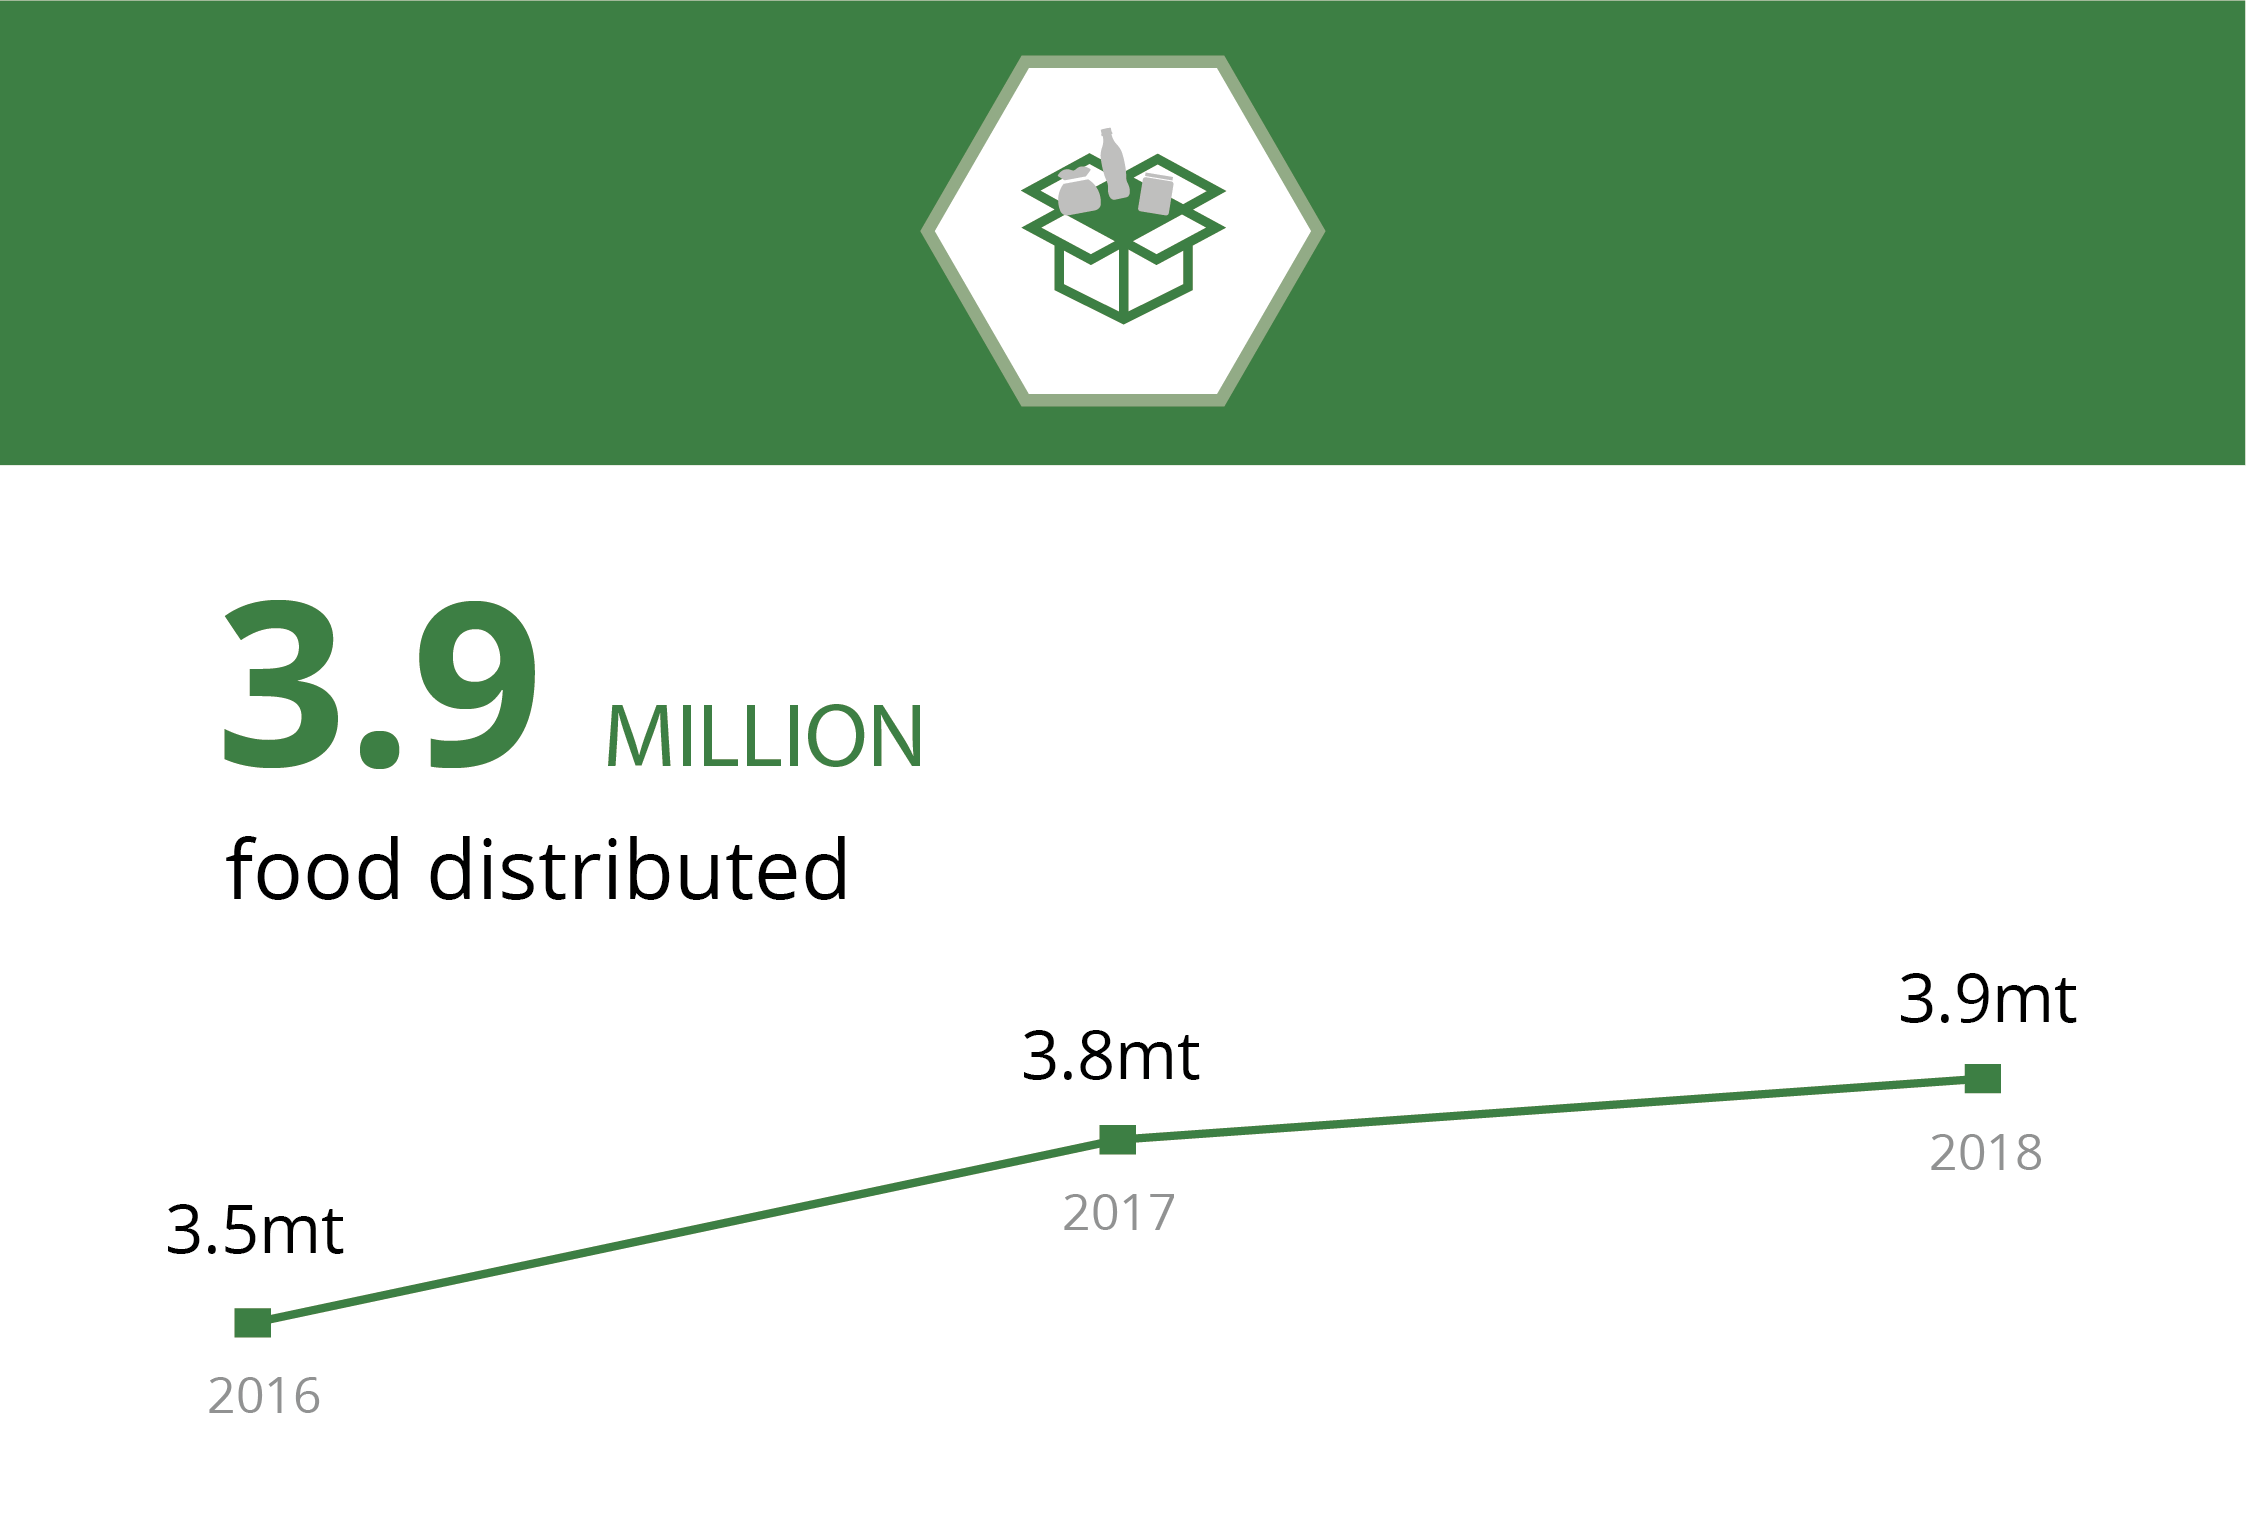 3.9 million food distributed